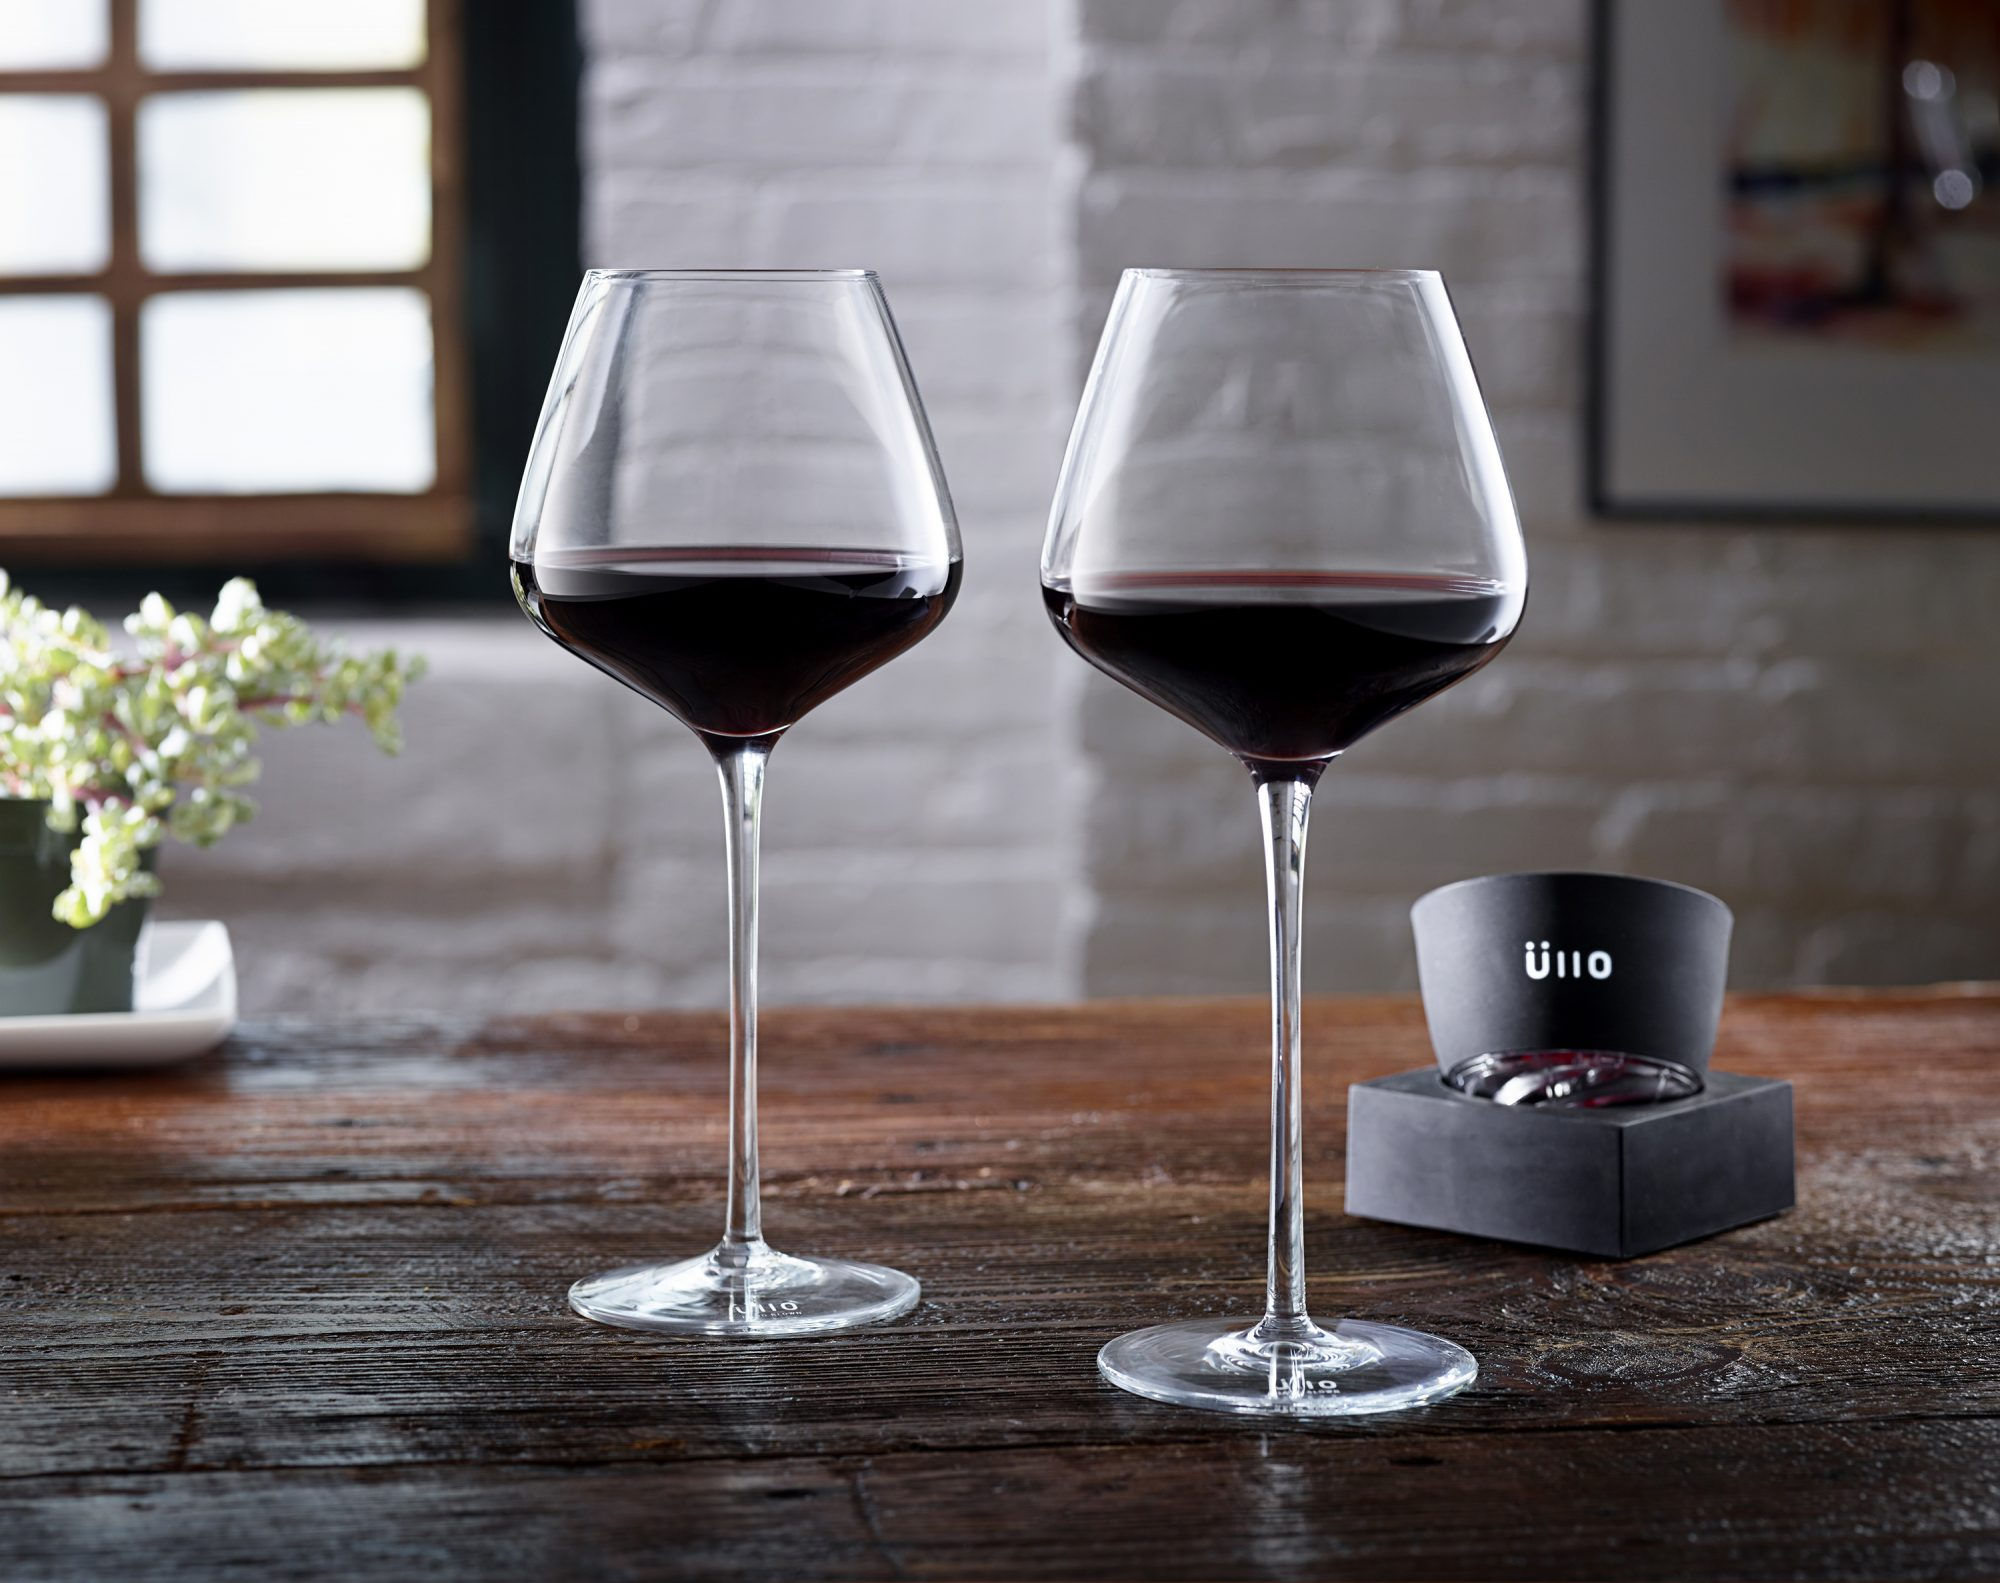 Two glasses of red wine on wooden surface with wine aerator